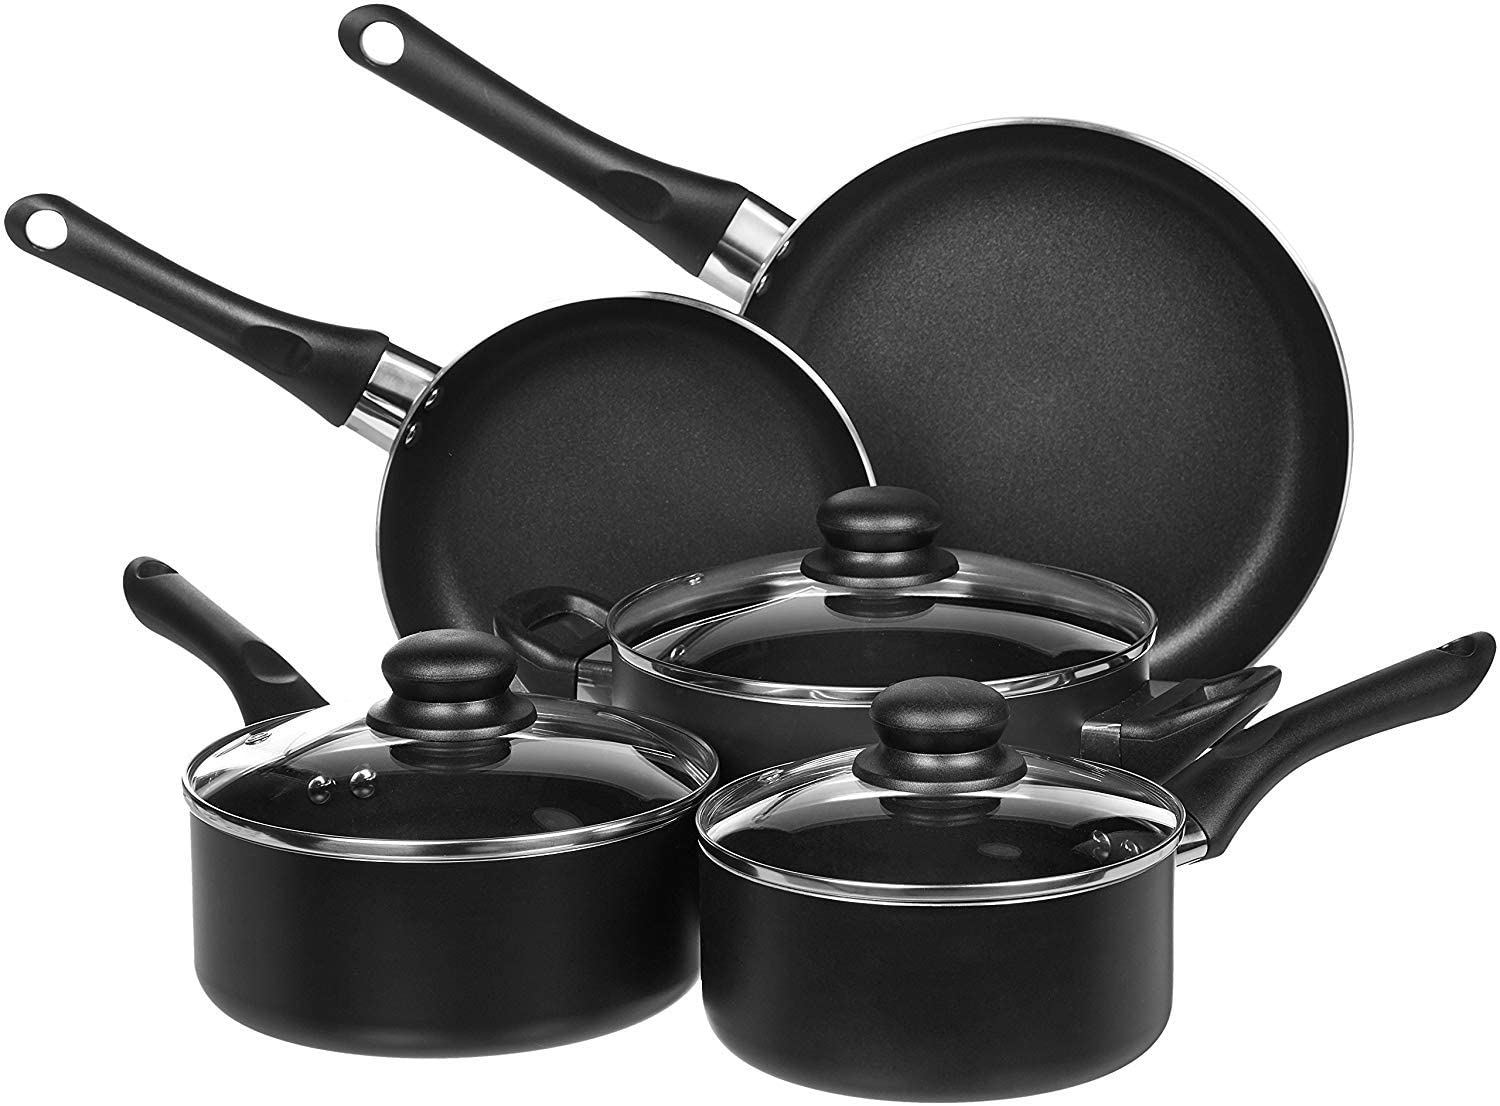 AmazonBasics Non-Stick Kitchen Cookware Set (8 Piece)